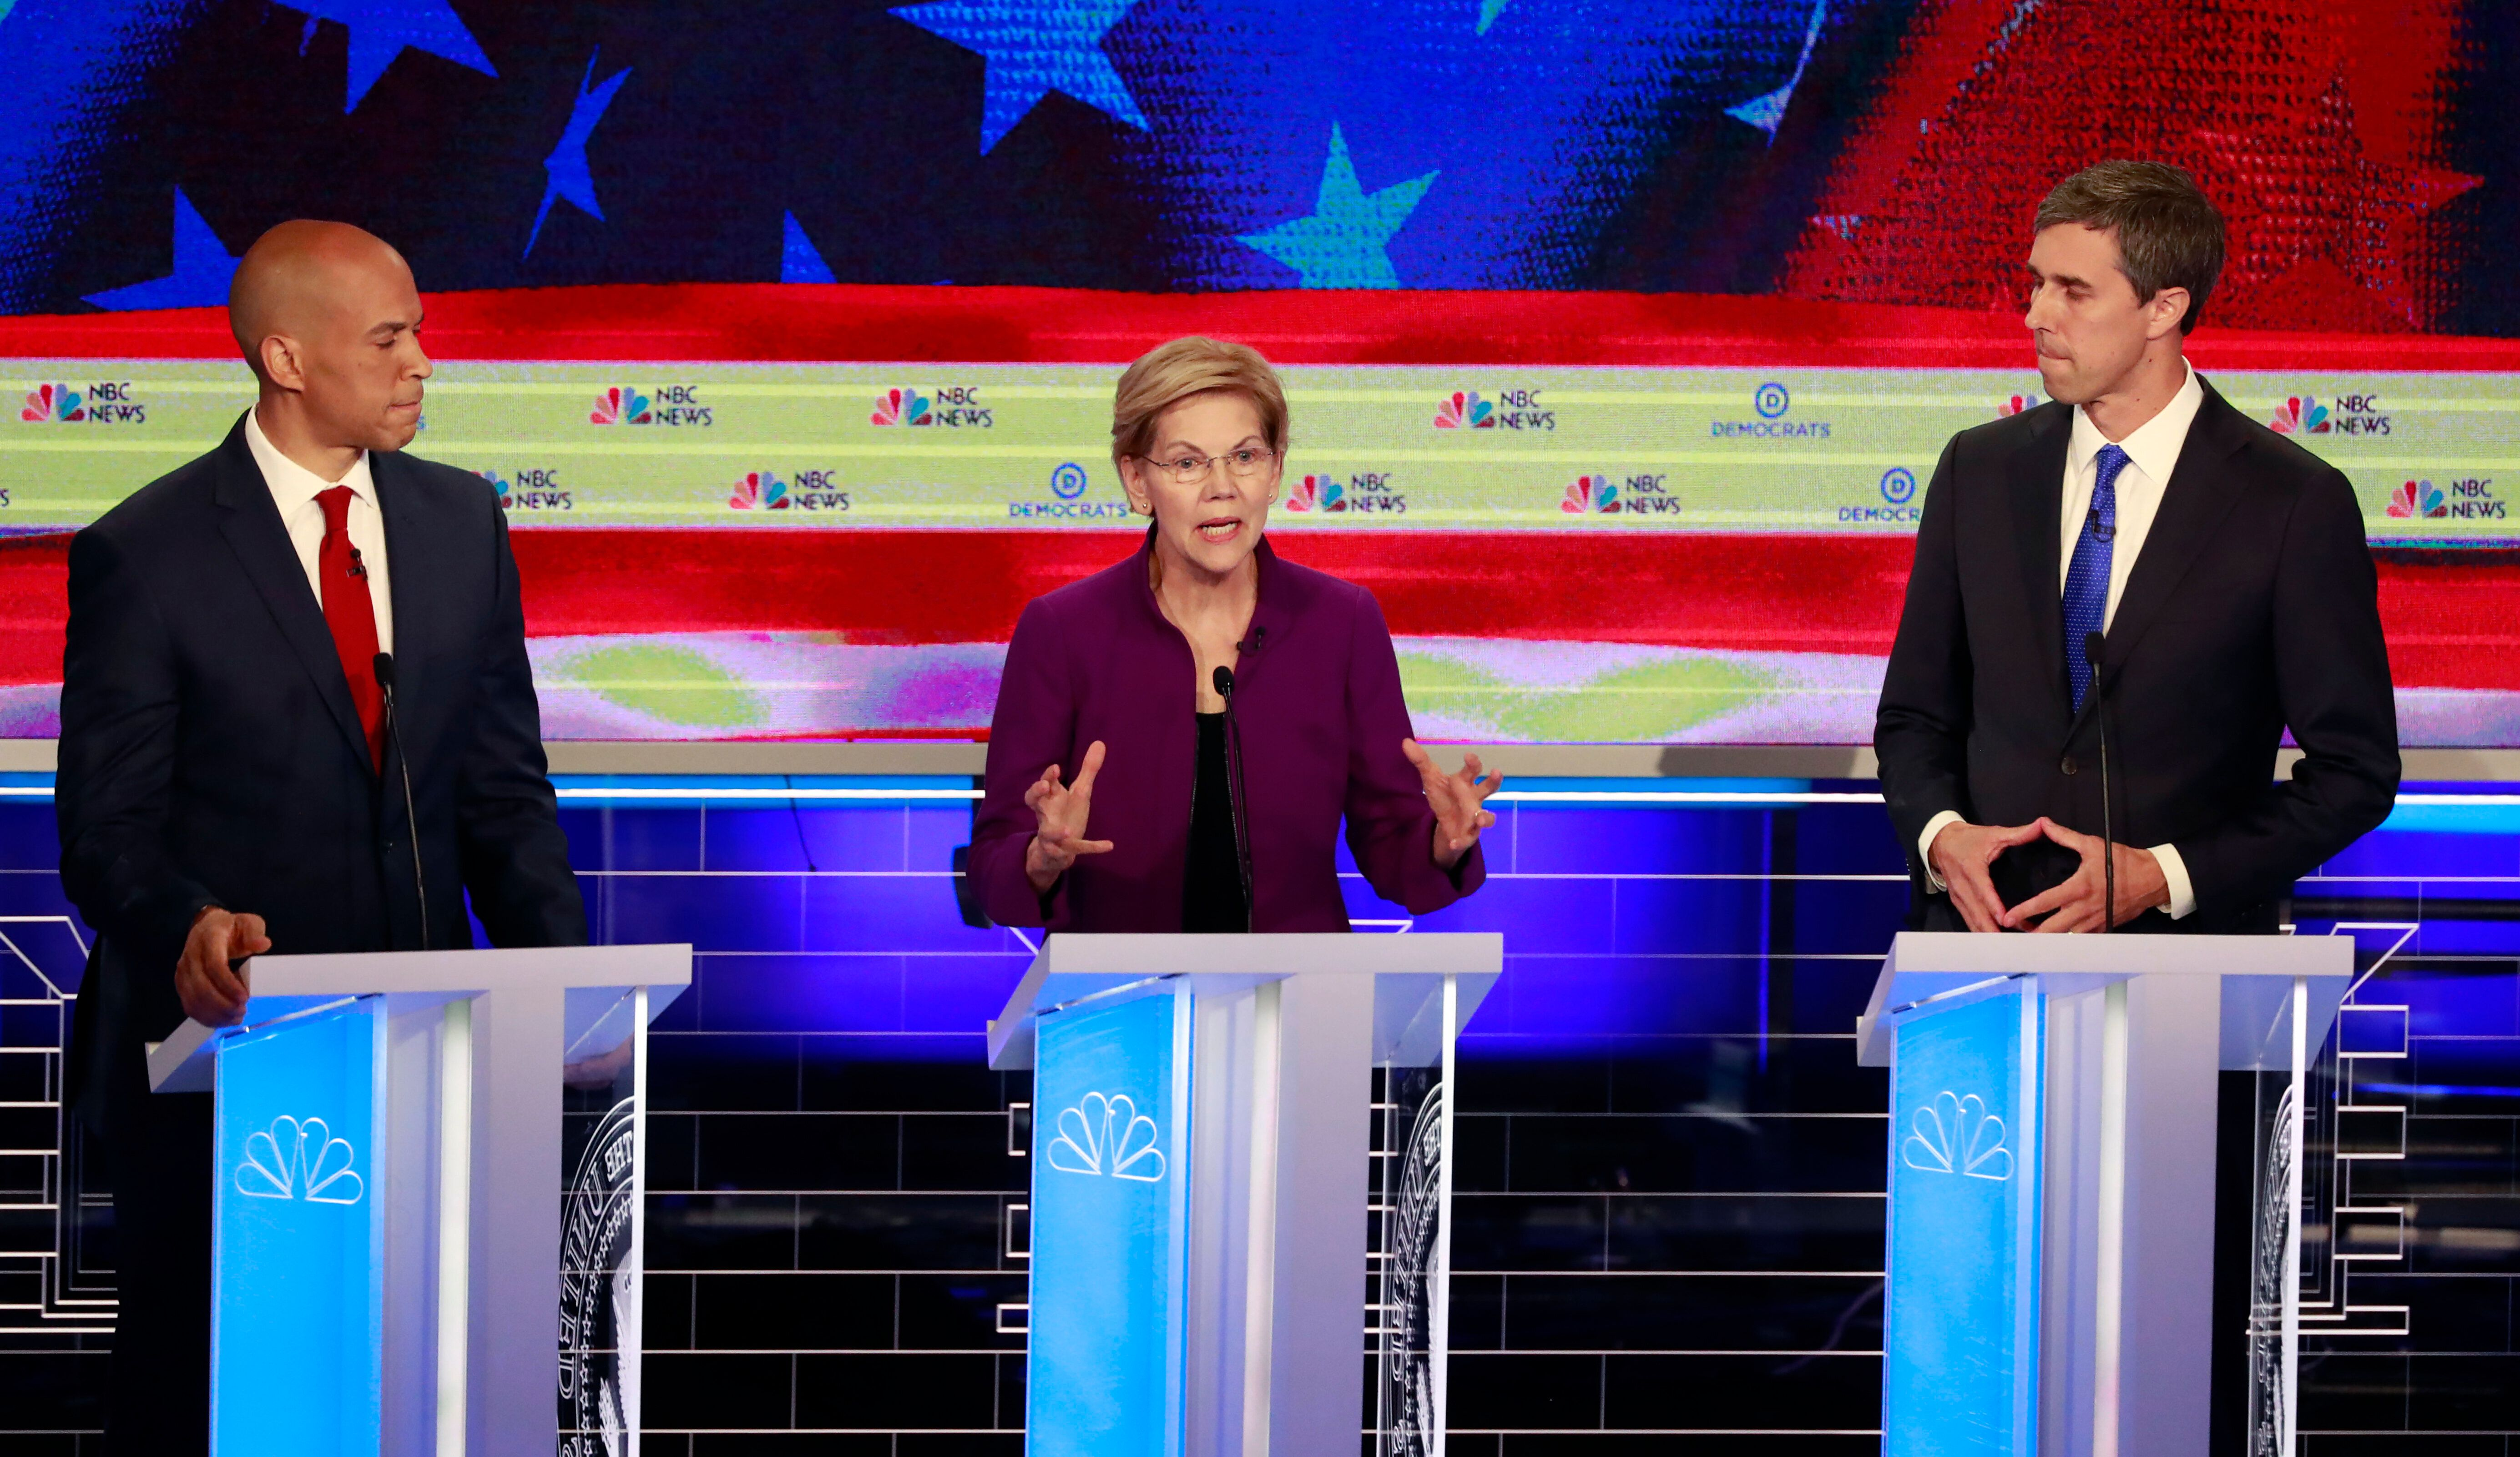 Massachusetts Sen. Elizabeth Warren got through the first presidential debate without facing any direct attacks.